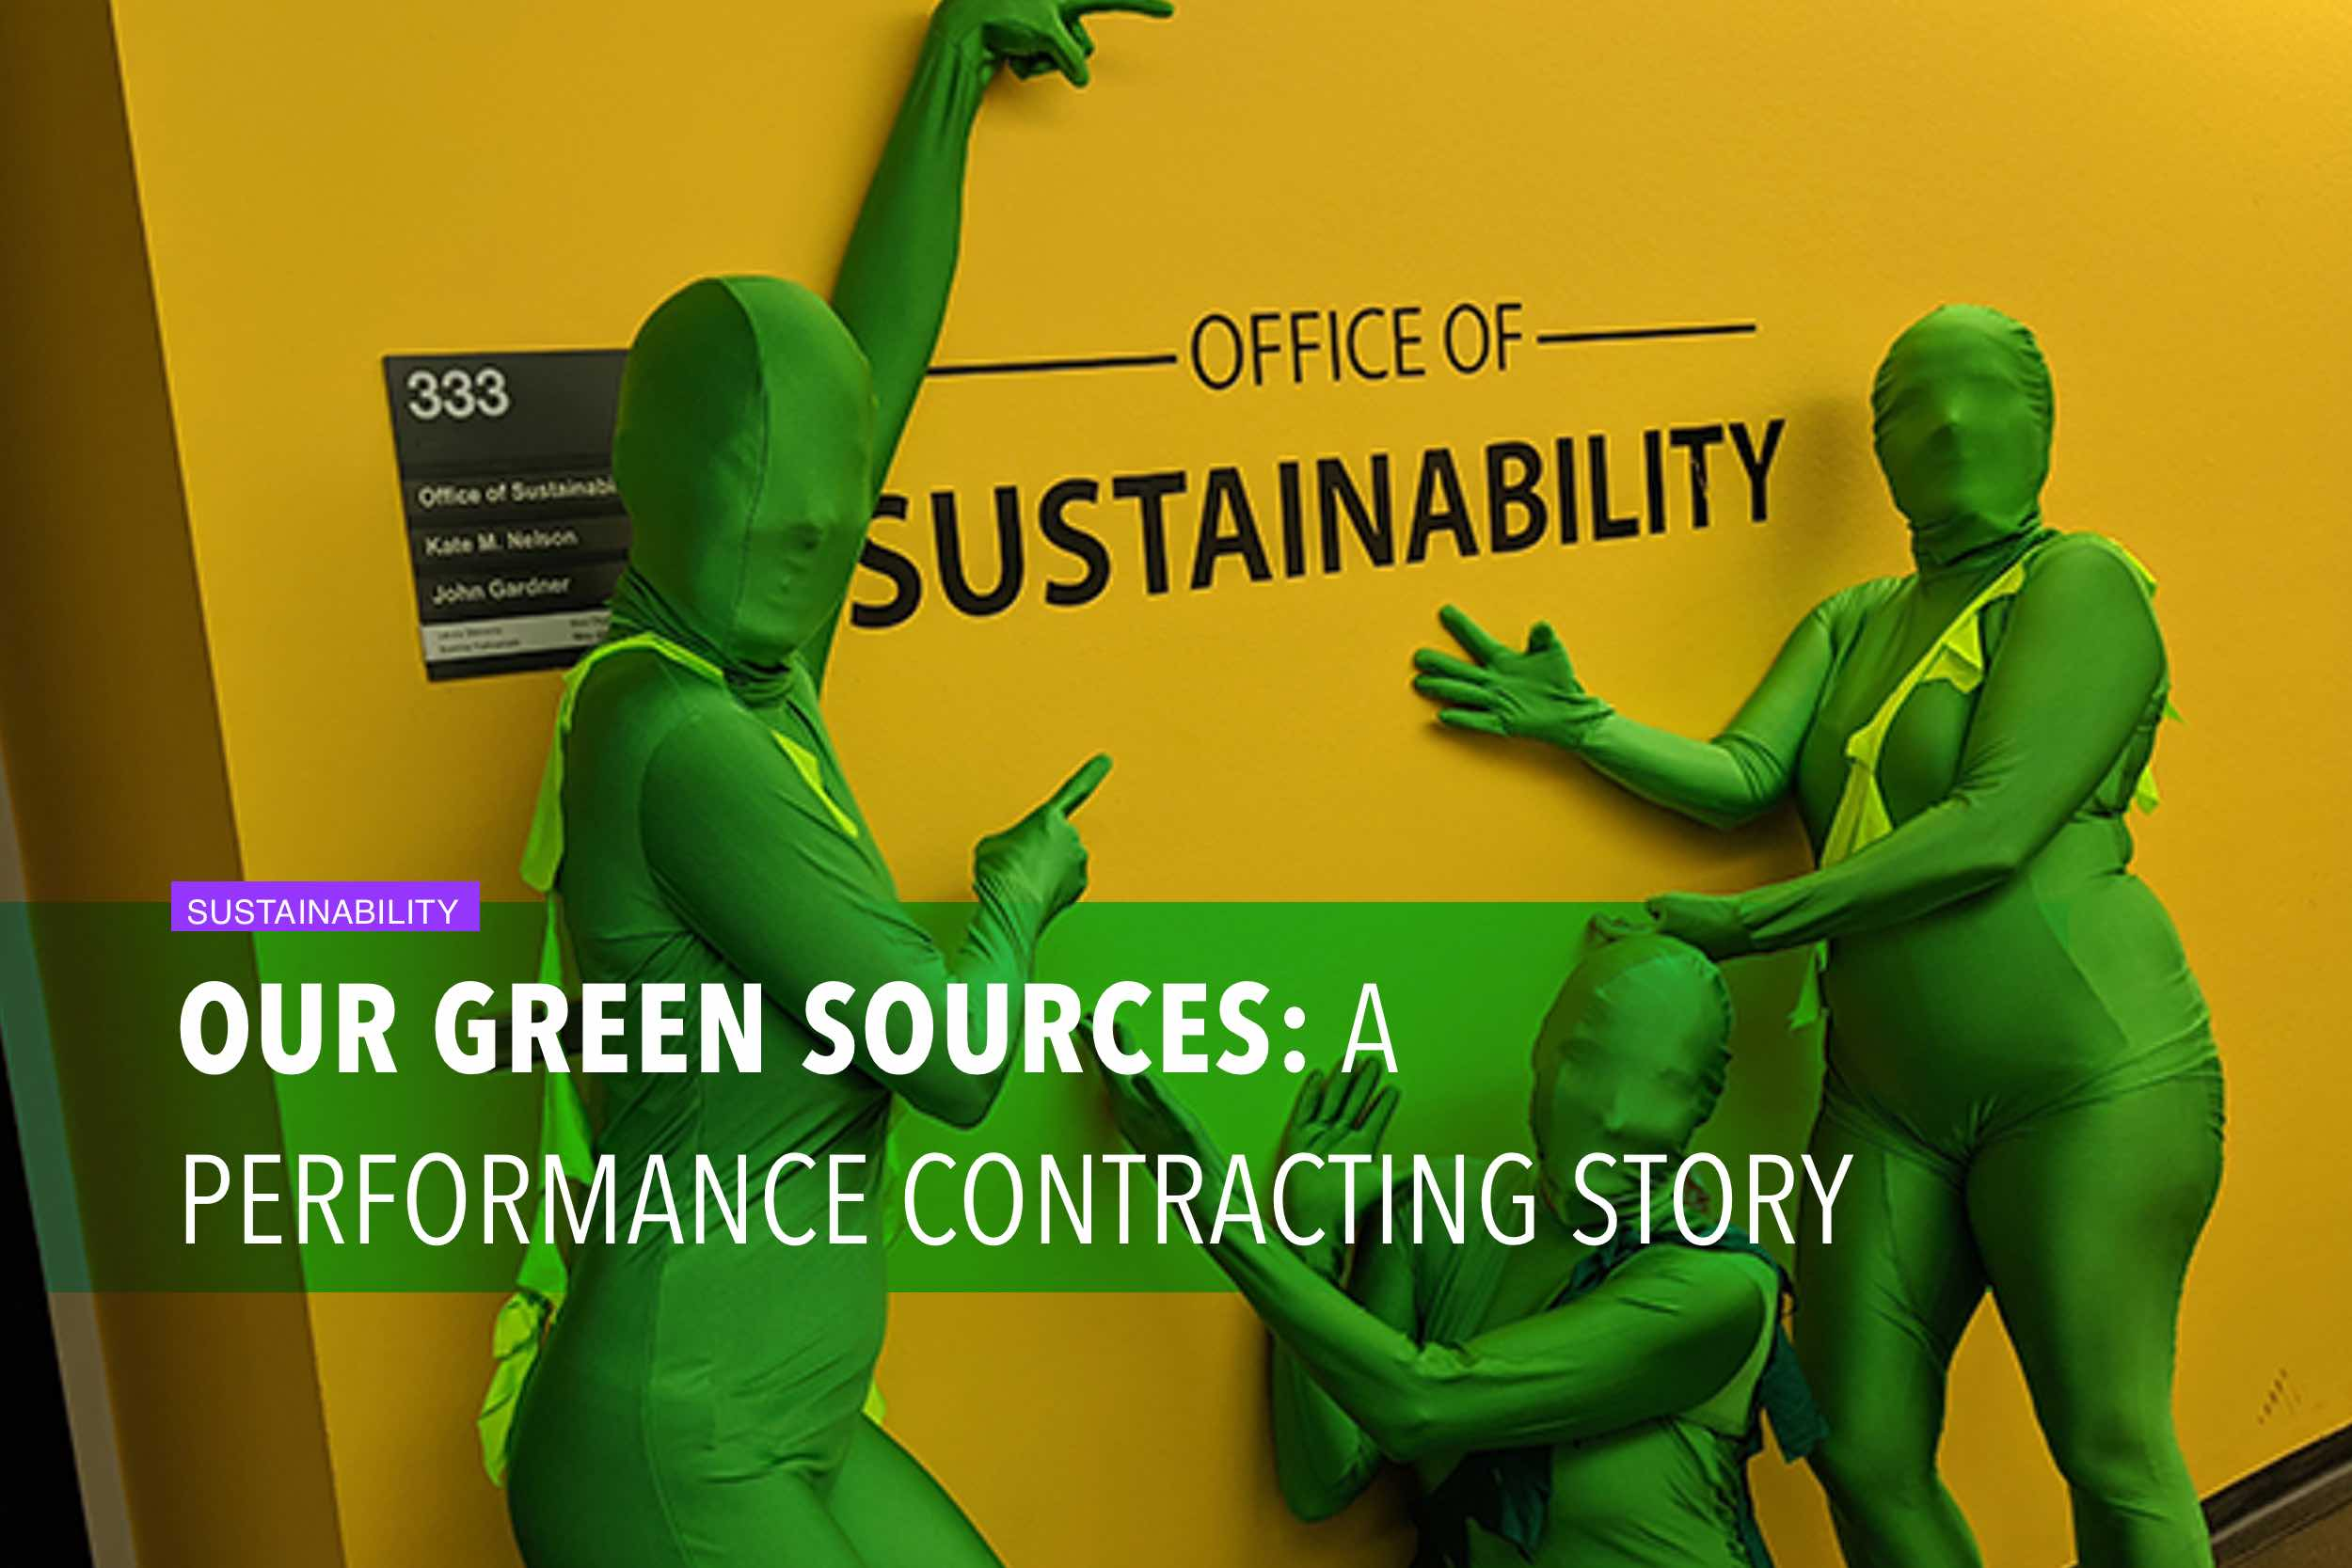 Our green sources: a performance contracting story